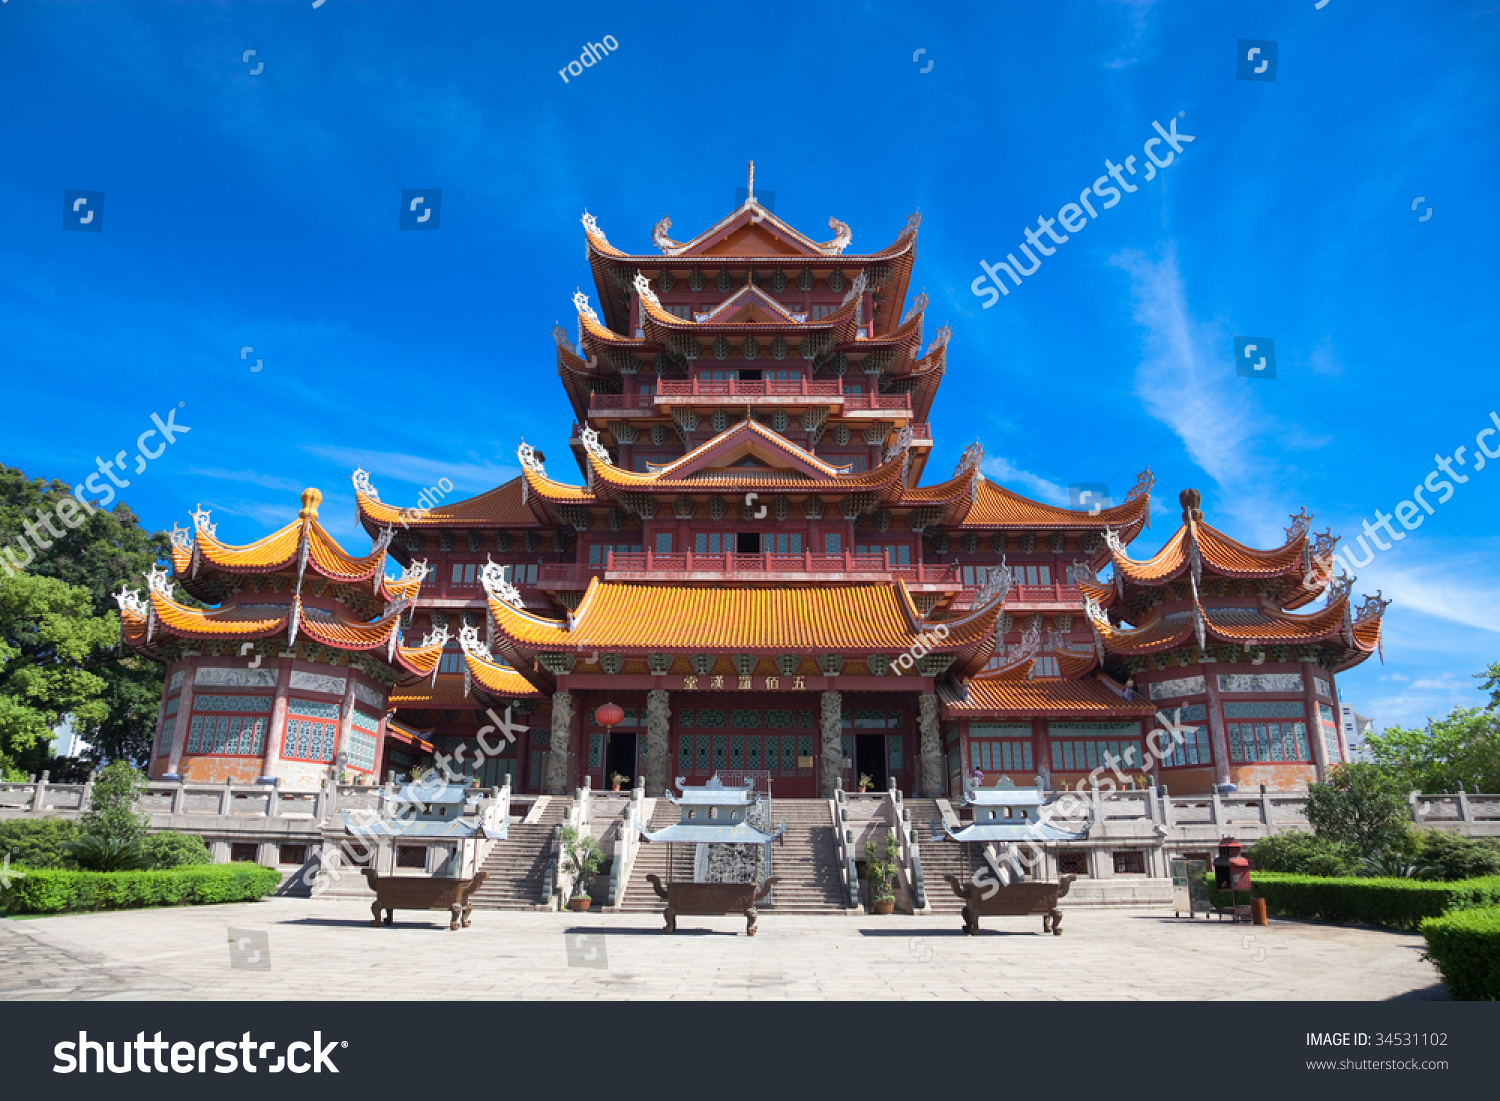 Temple Of Xichan In Fuzhou China  Xichan Temple Dating From     Shutterstock Save to a lightbox